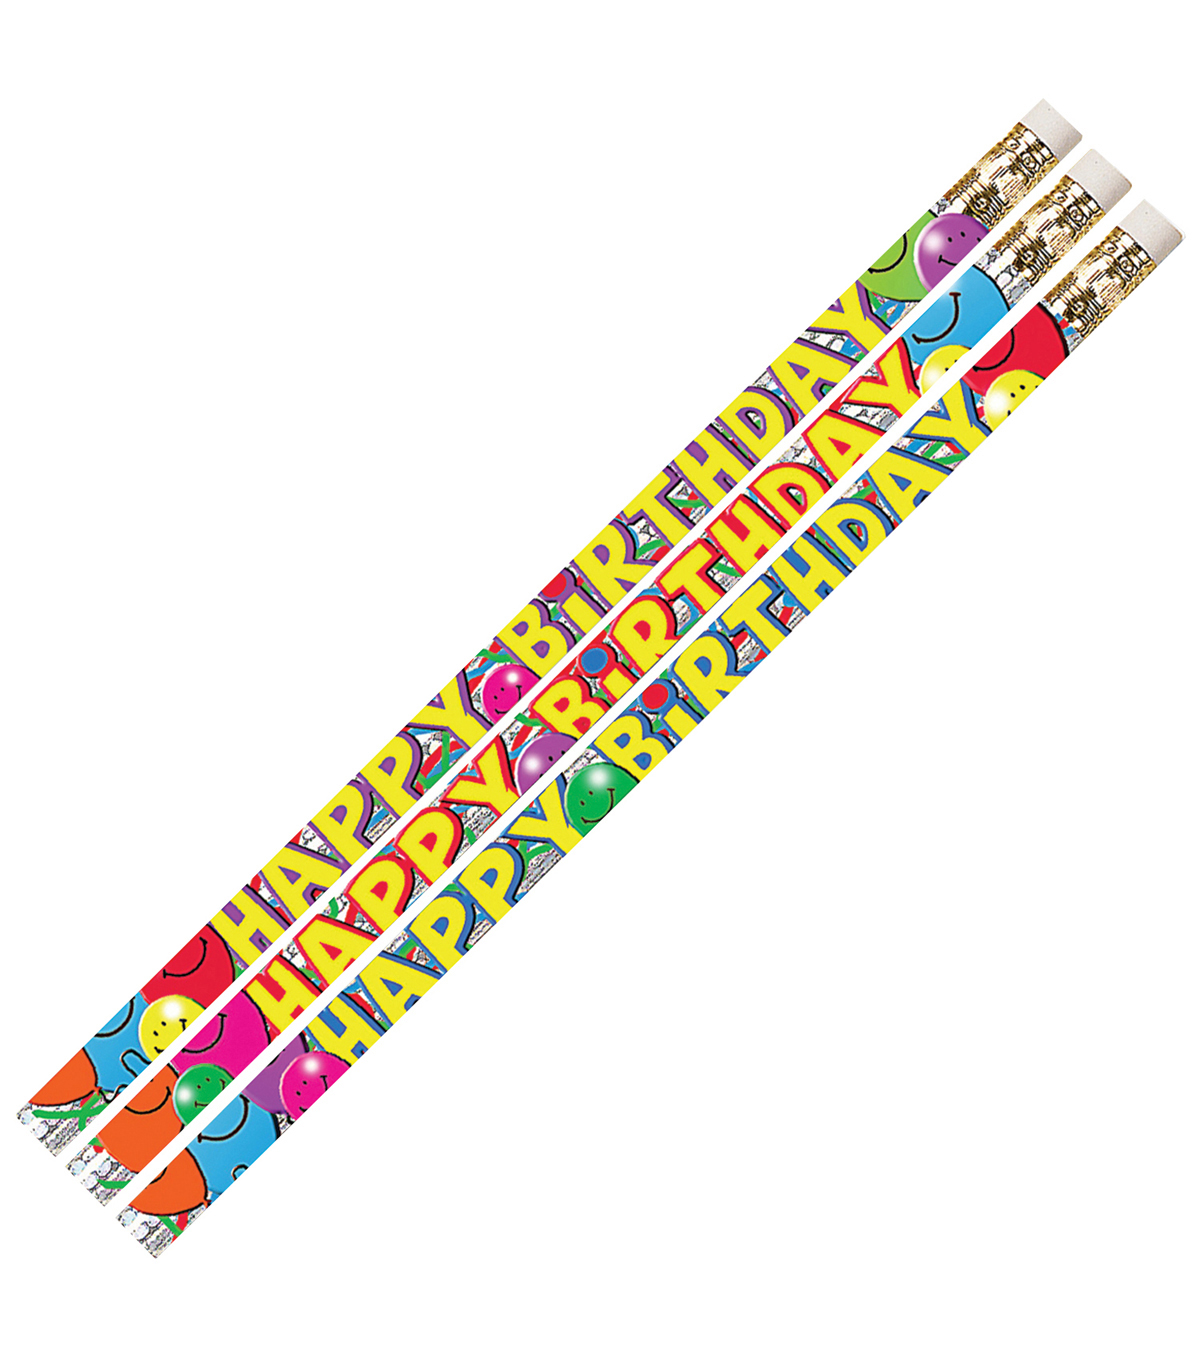 Musgrave Pencil Company 144 pk Pencils with Erasers-Birthday Bash